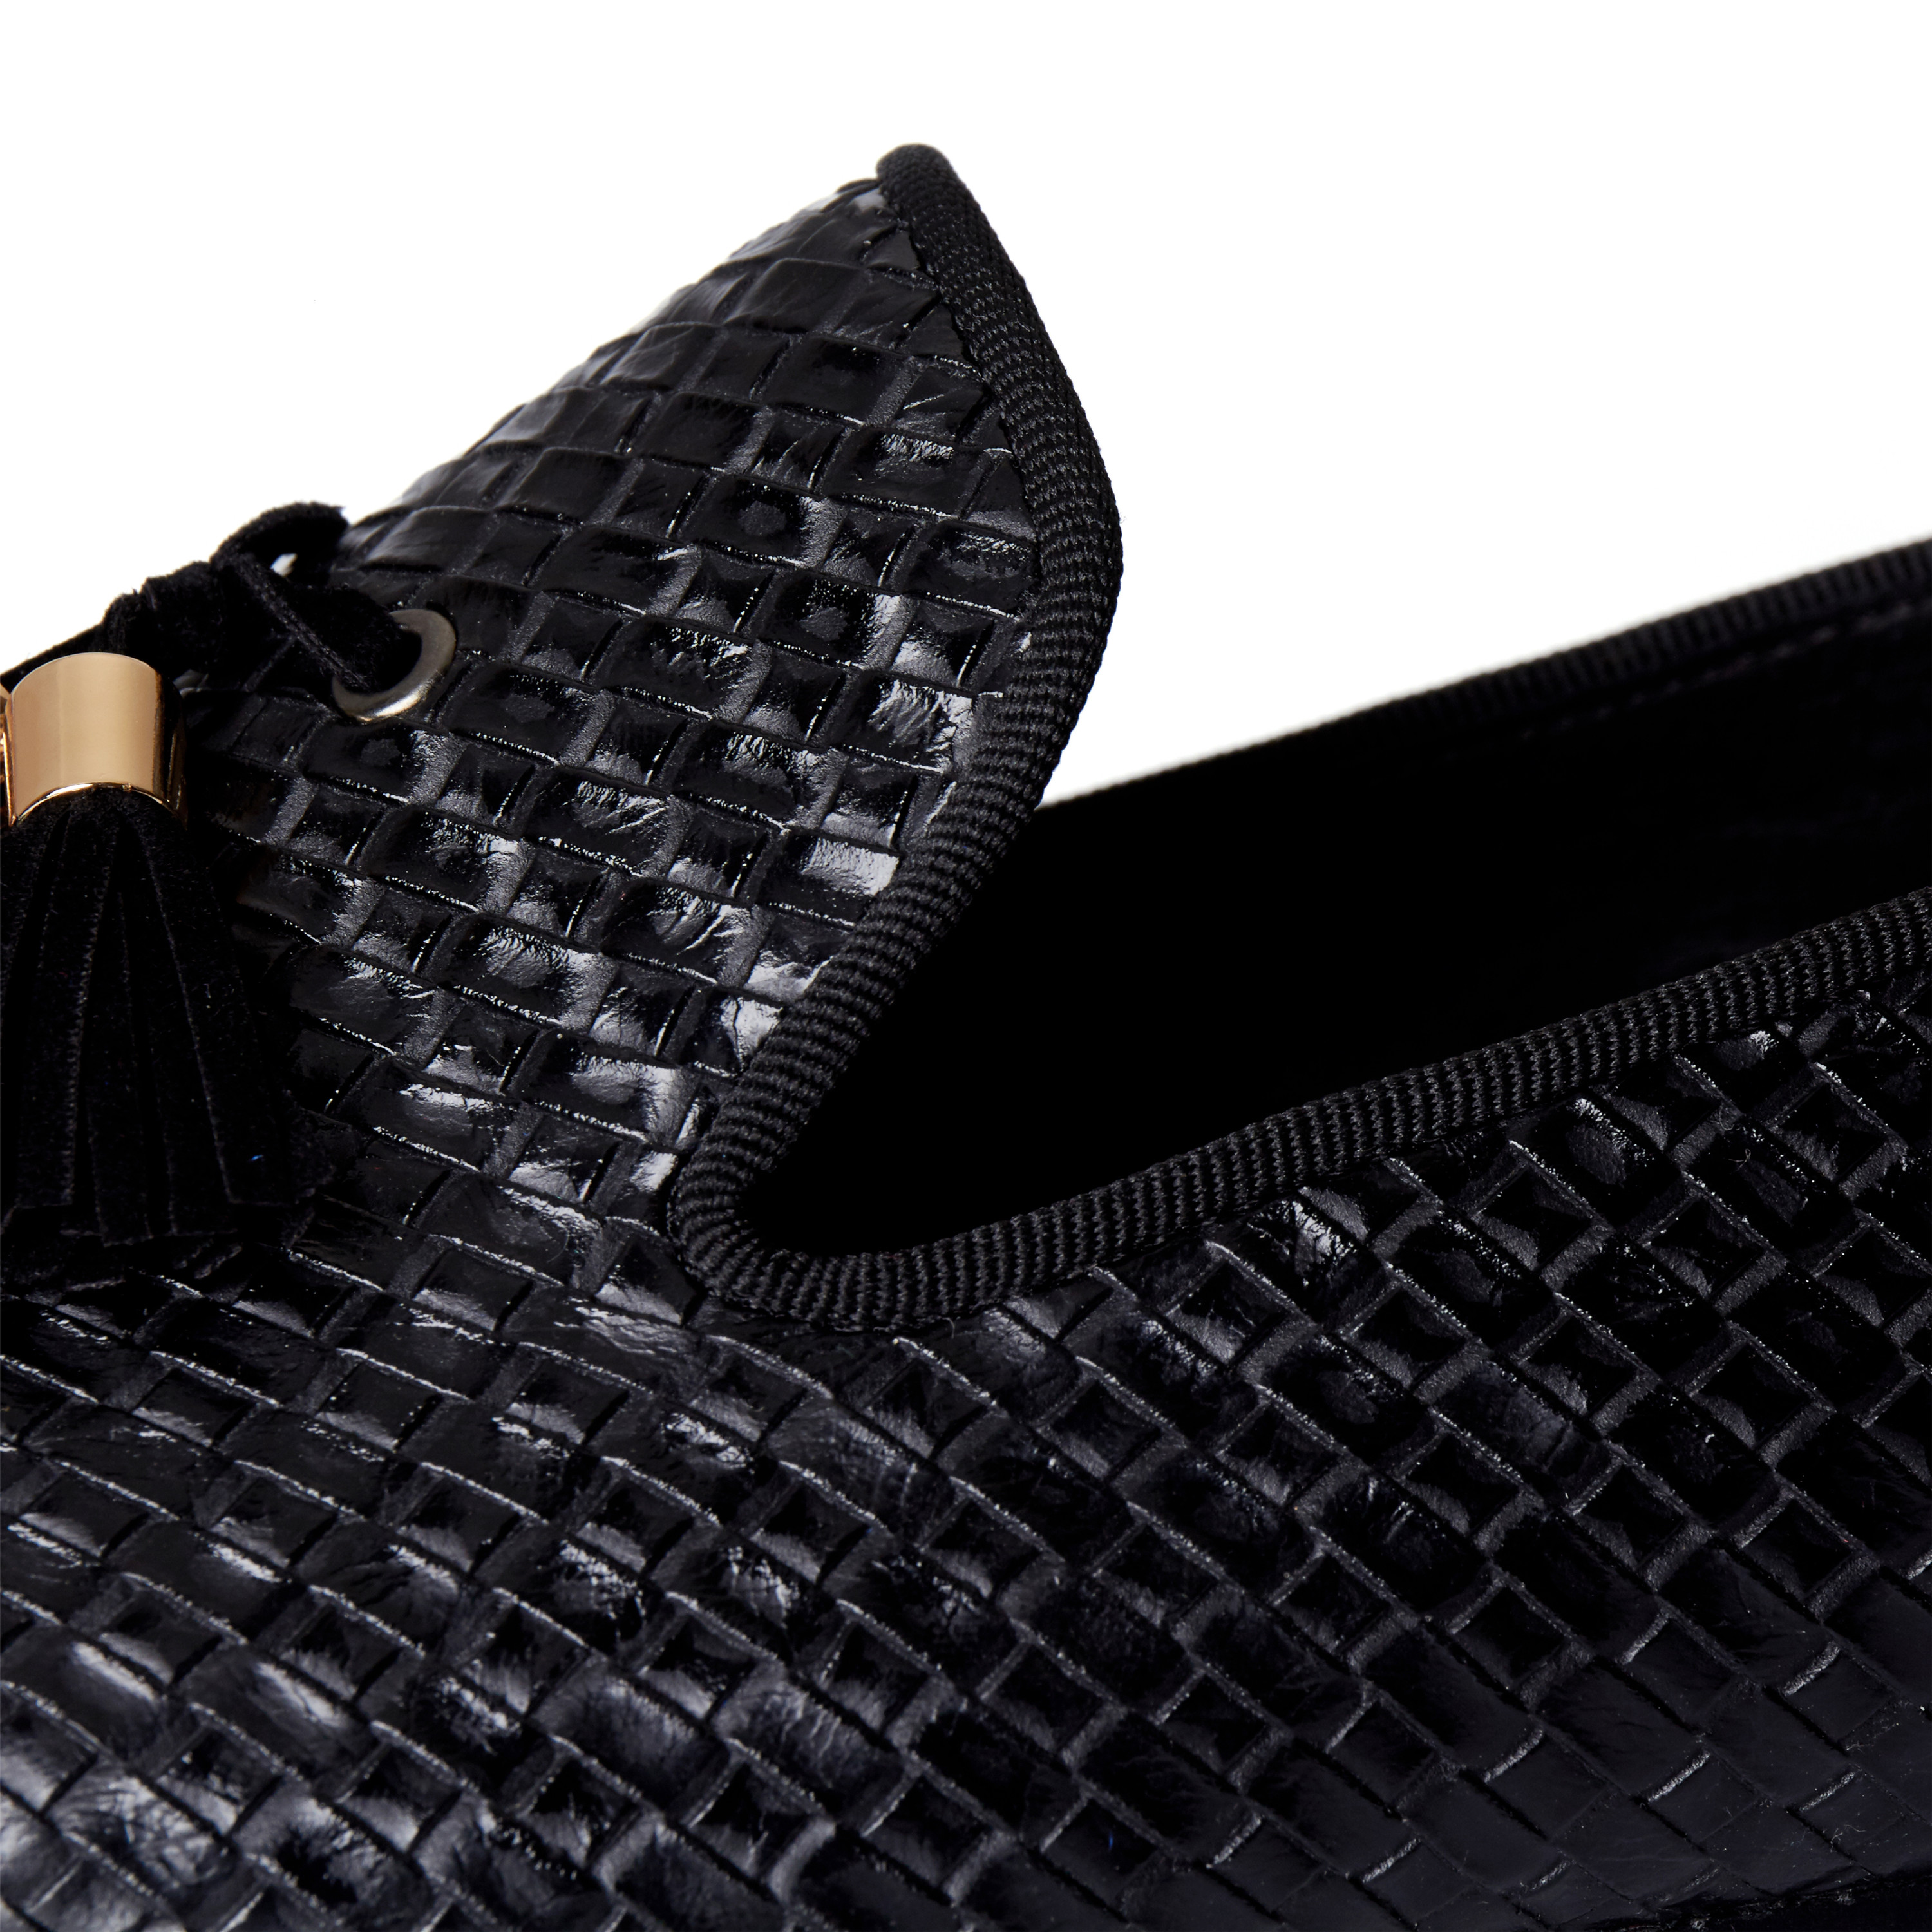 d73729599aac0d Harpelunde Slip On Men Dress Shoes Black Tassel Loafer Flats US Size 6 14-in  Formal Shoes from Shoes on Aliexpress.com